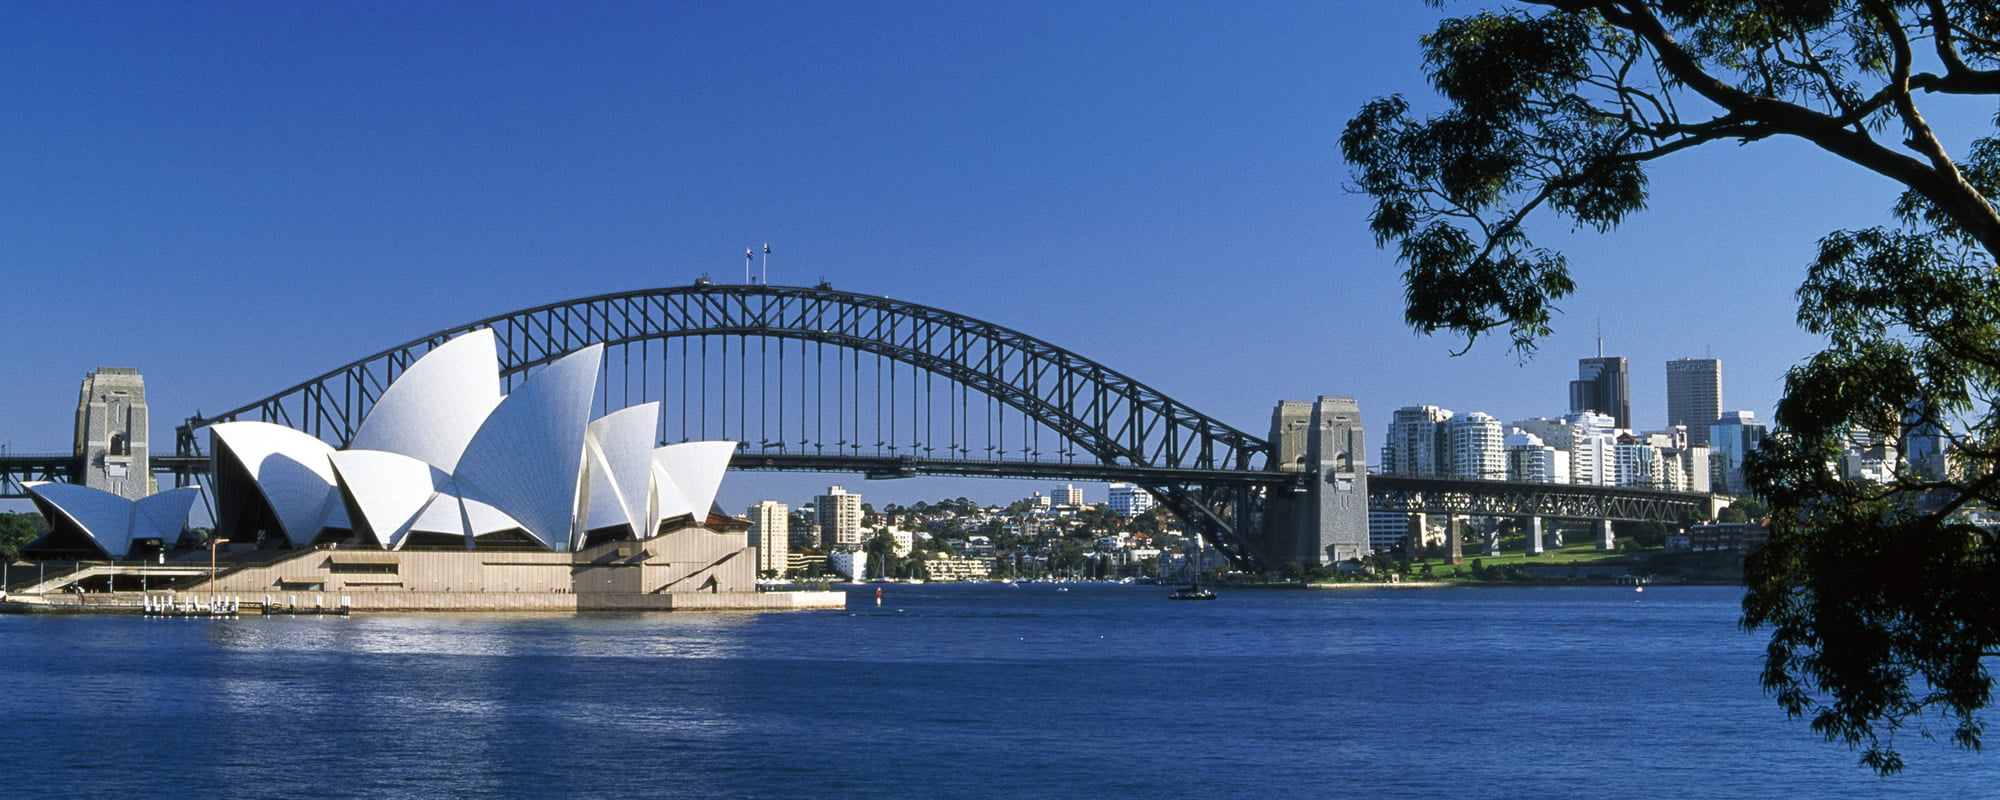 Villair Travel specialists in holidays to Australia and New Zealand